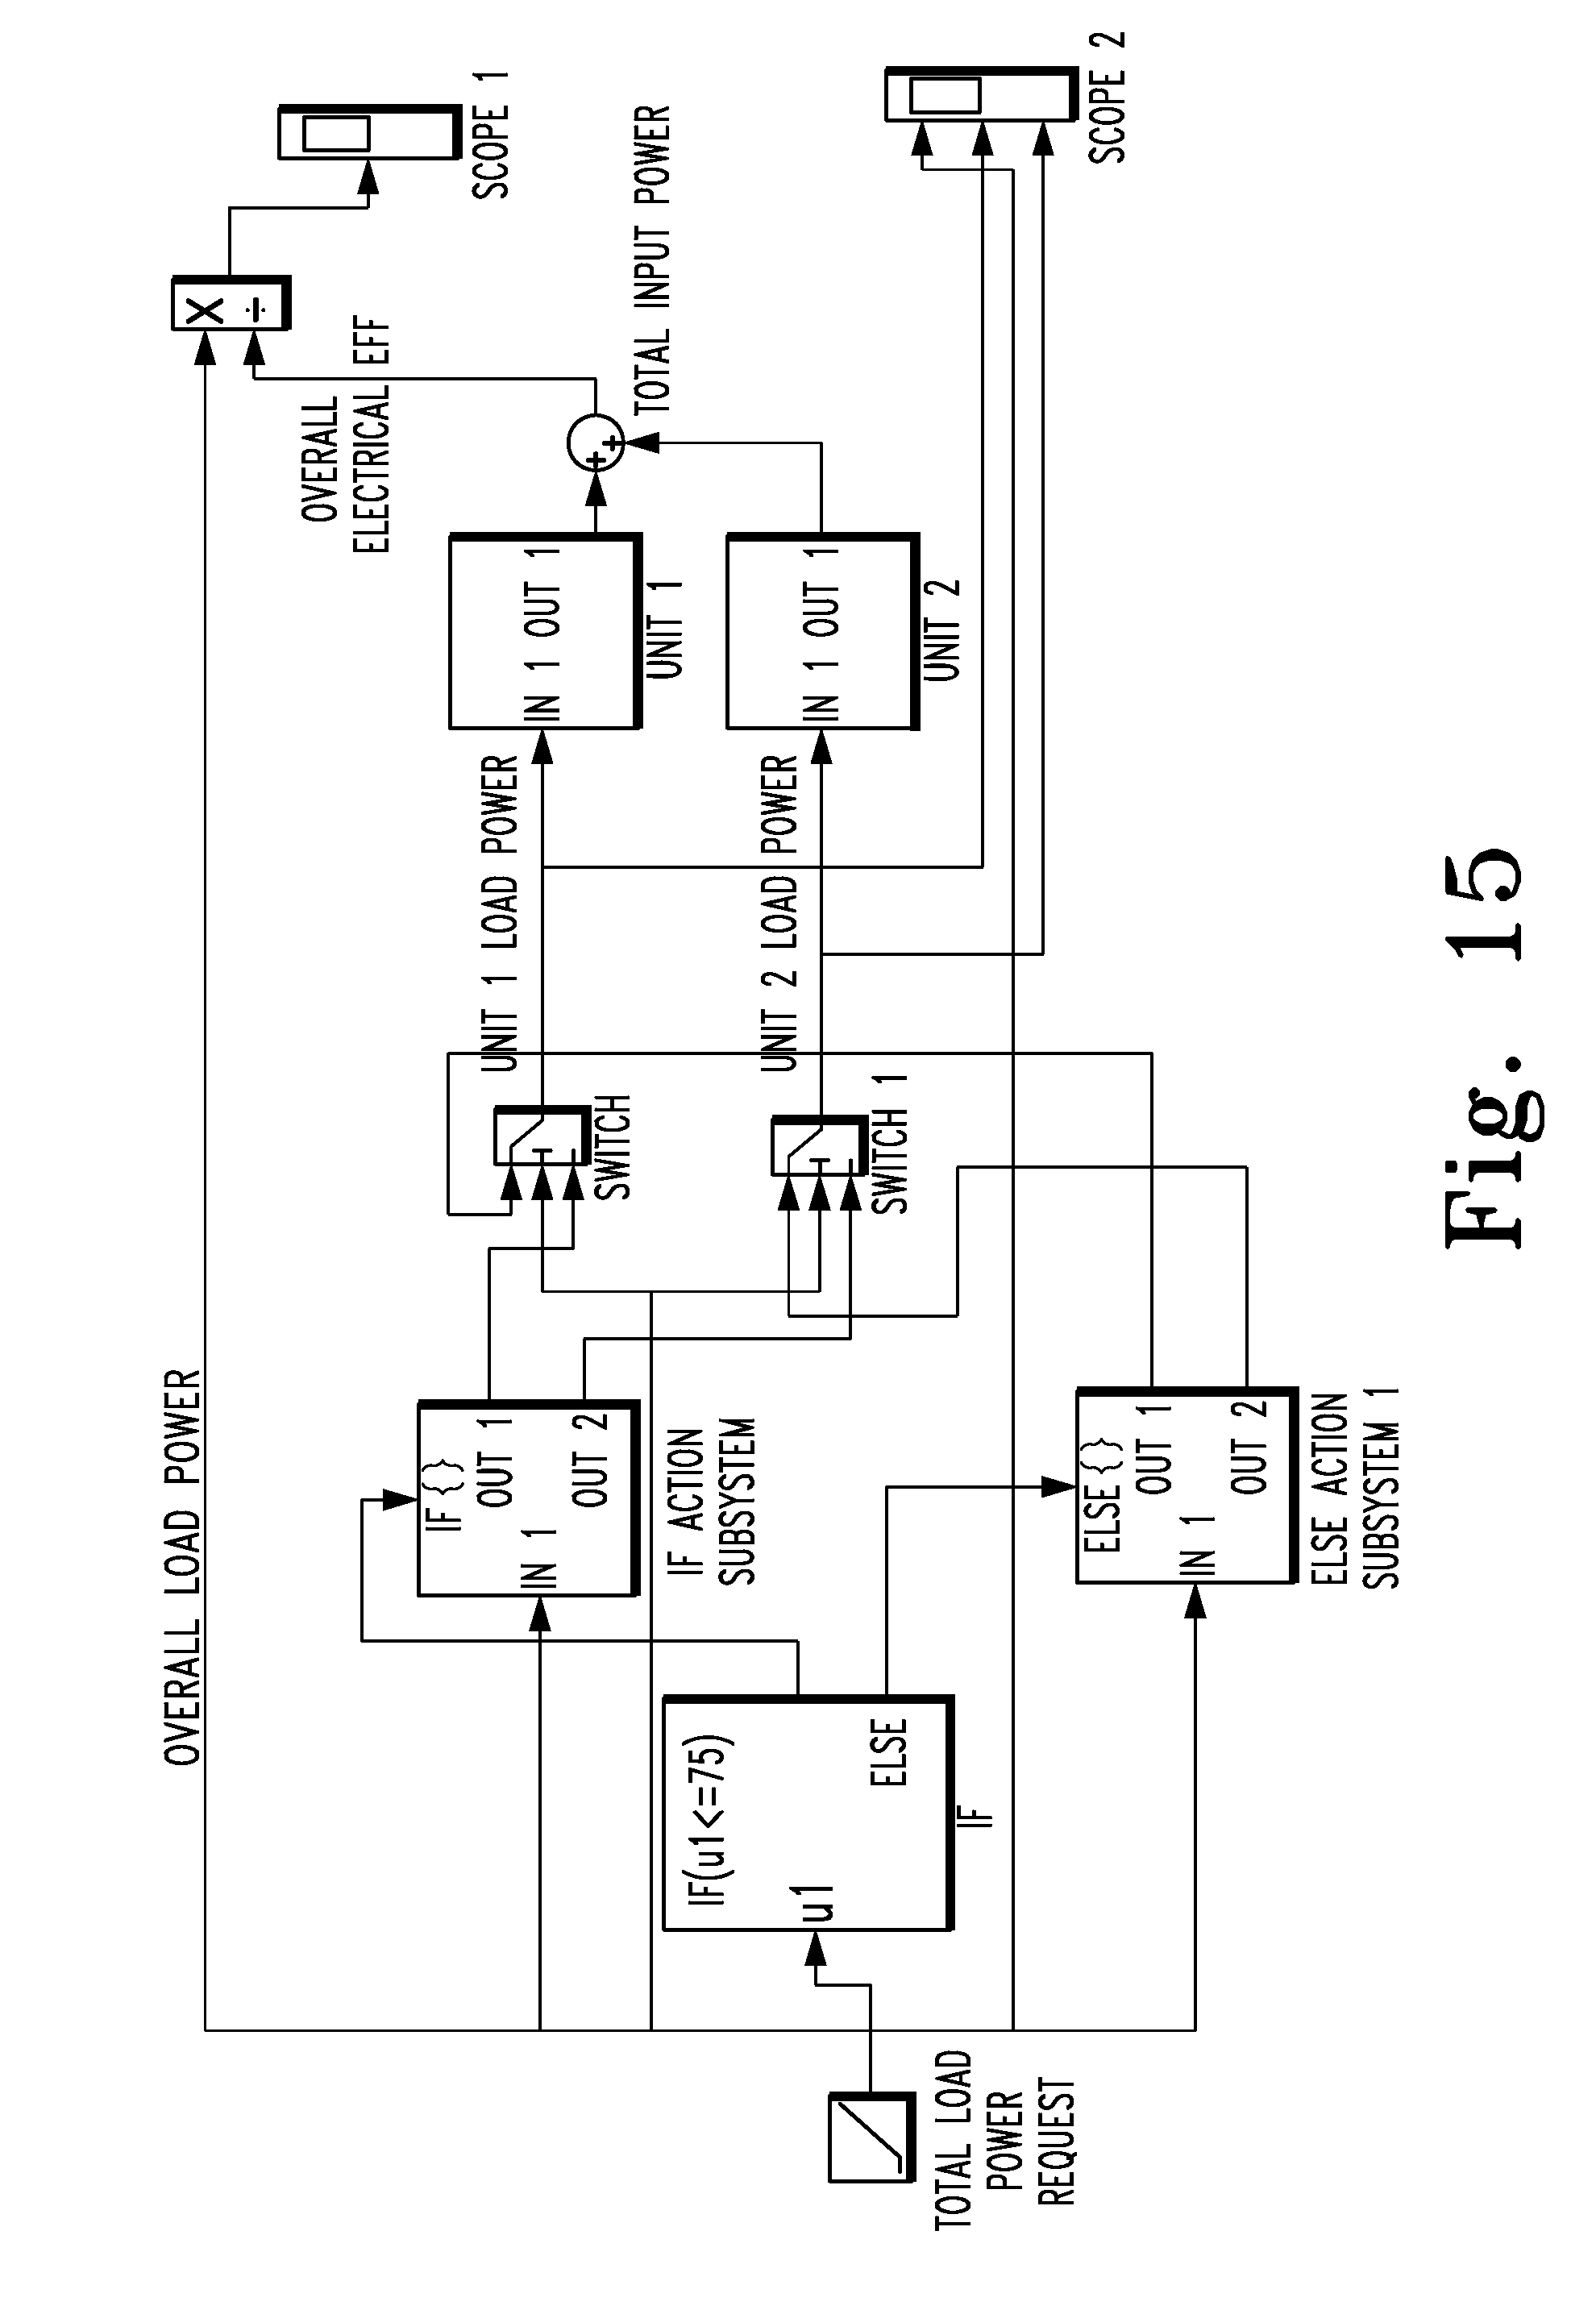 Draw Phasor Diagram Online Patent Integrated And Optimized Distributed Generation